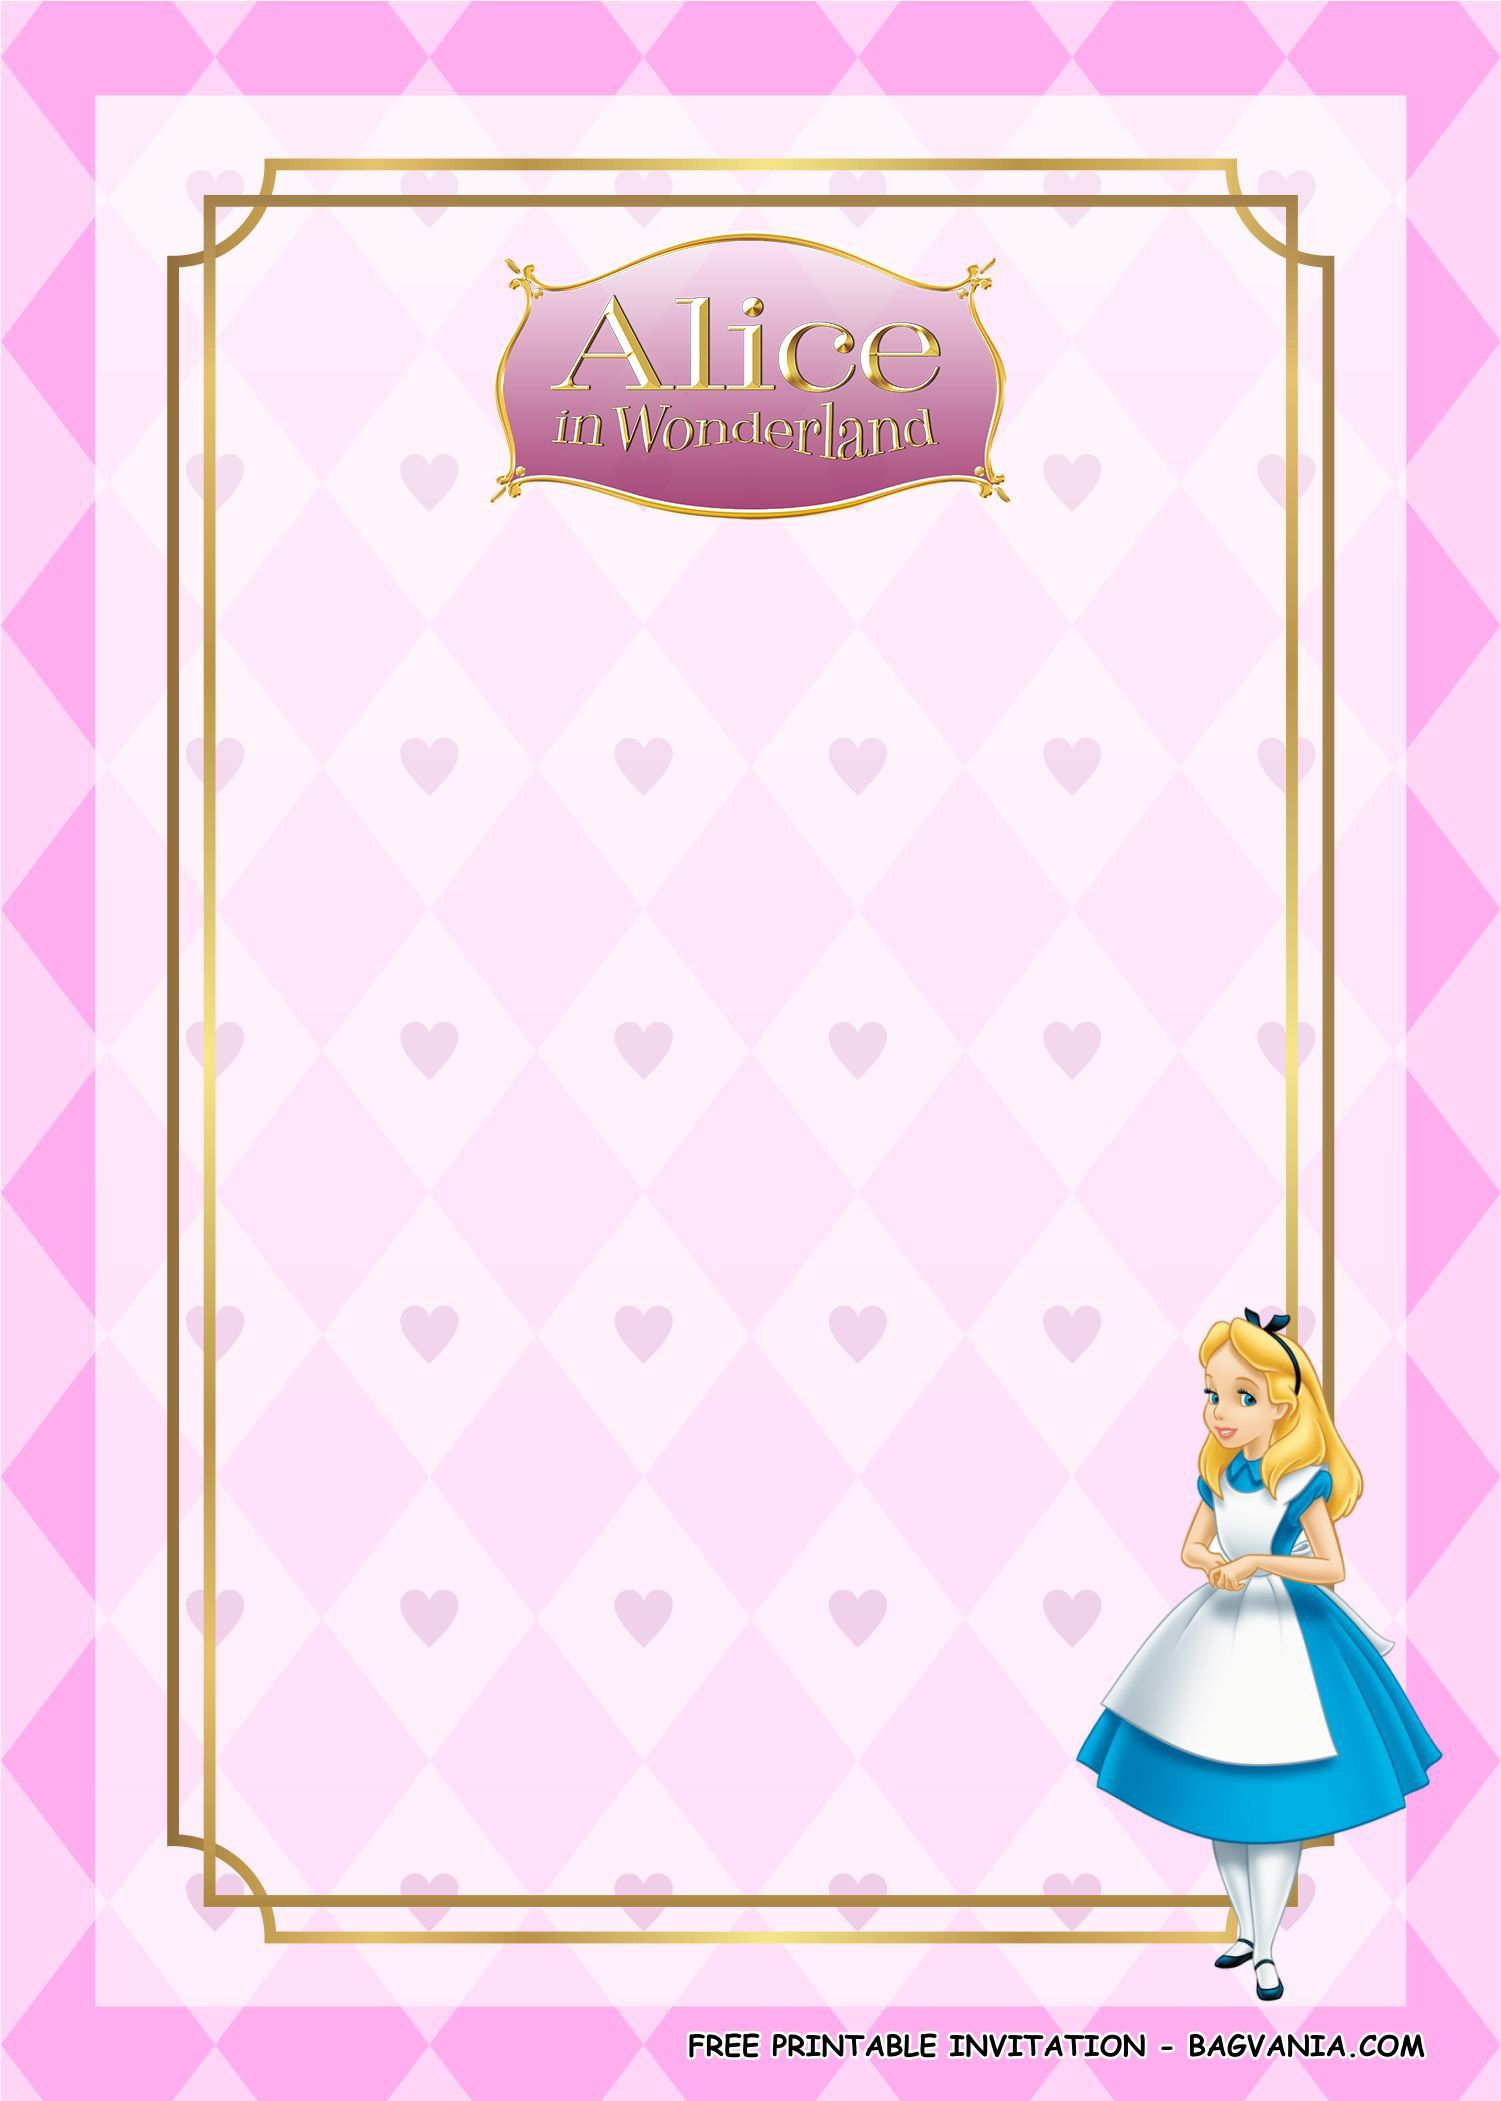 008 Stunning Alice In Wonderland Invitation Template Example  Templates Birthday Free Wedding Wording DownloadFull